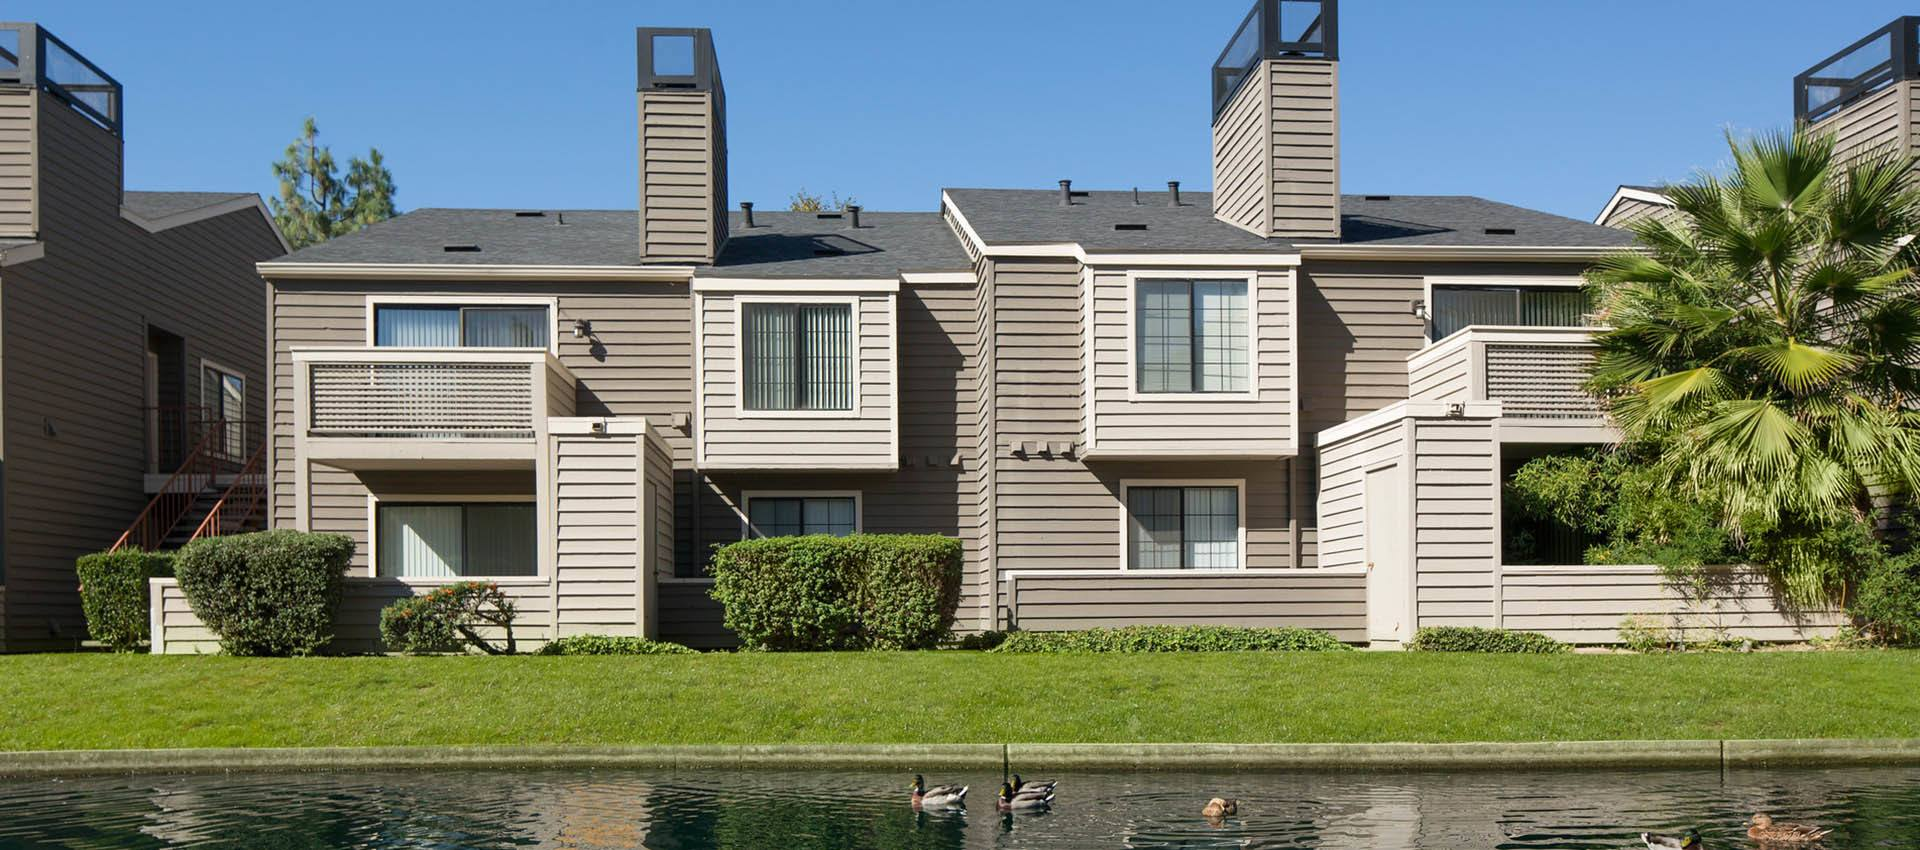 Condo Exterior Near Waterfront at Hidden Lake Condominium Rentals in Sacramento, CA